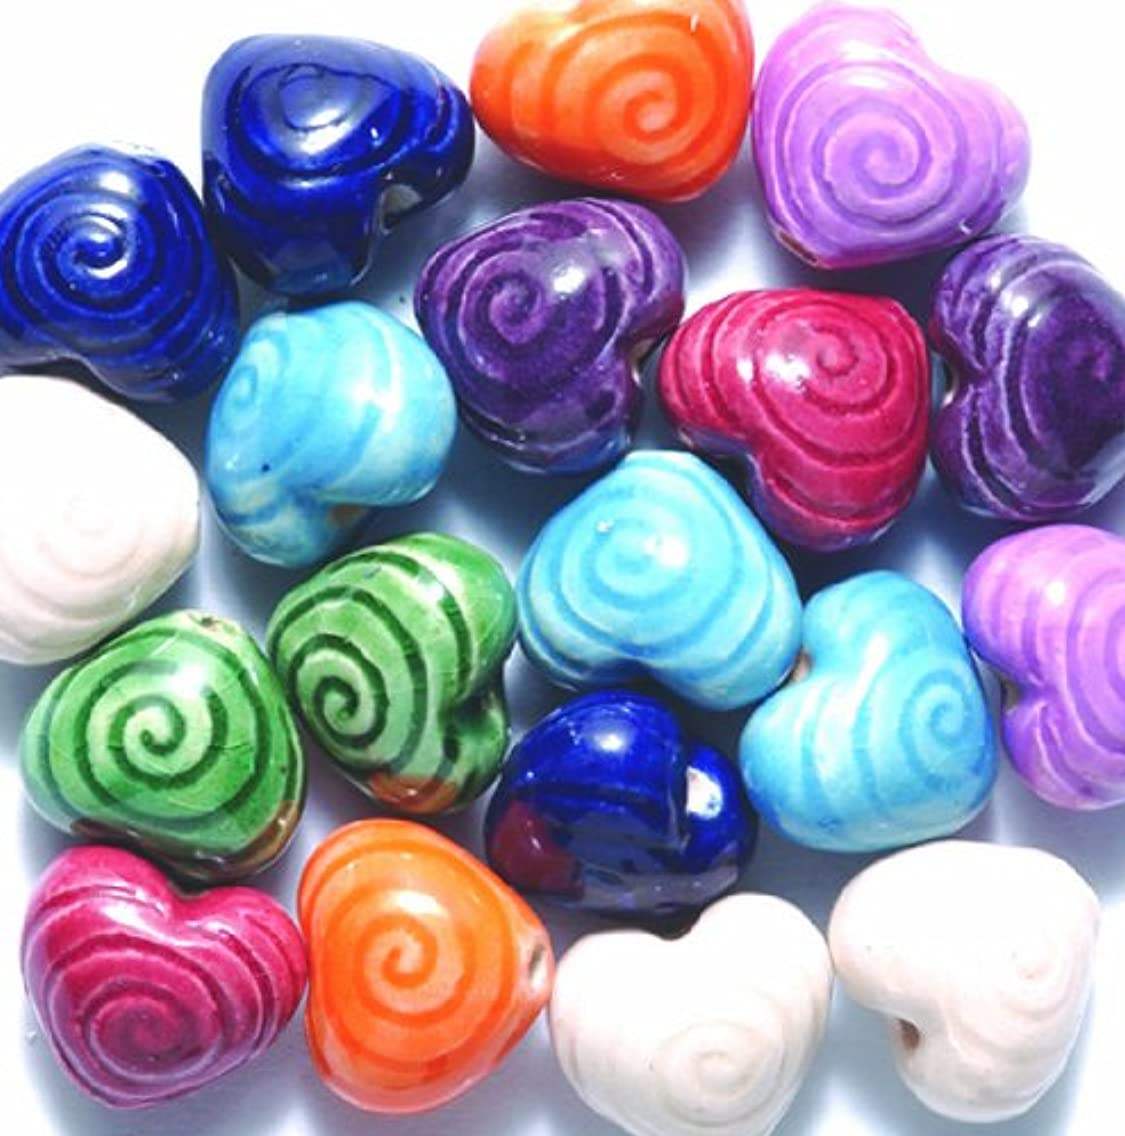 Peruvian 10mm Hand Crafted Ceramic Heart Beads with Spiral Mix, 10 per Pack